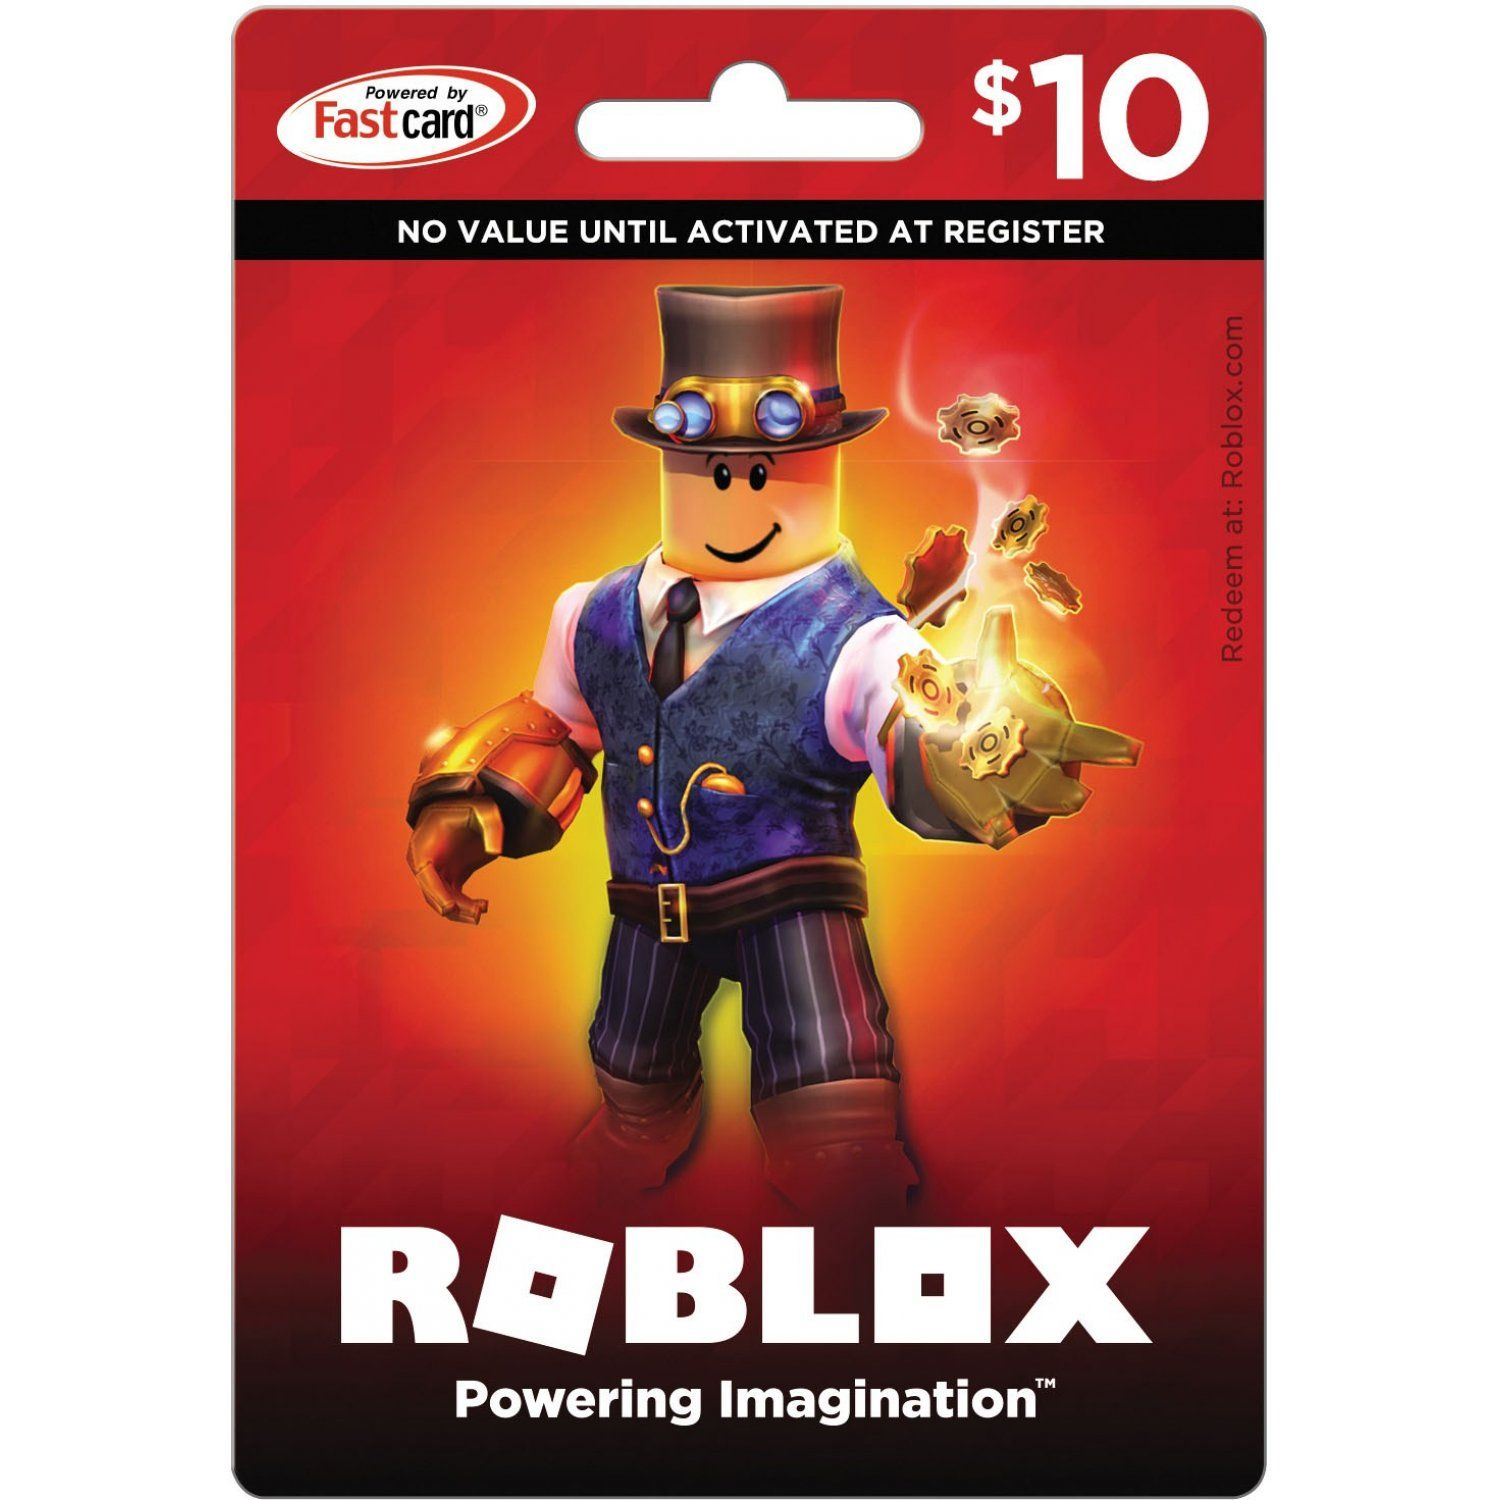 amazoncom roblox hunted vampire action figure comes Pin By Gamer Pichu On Games Online Roblox Gifts Roblox Card Games